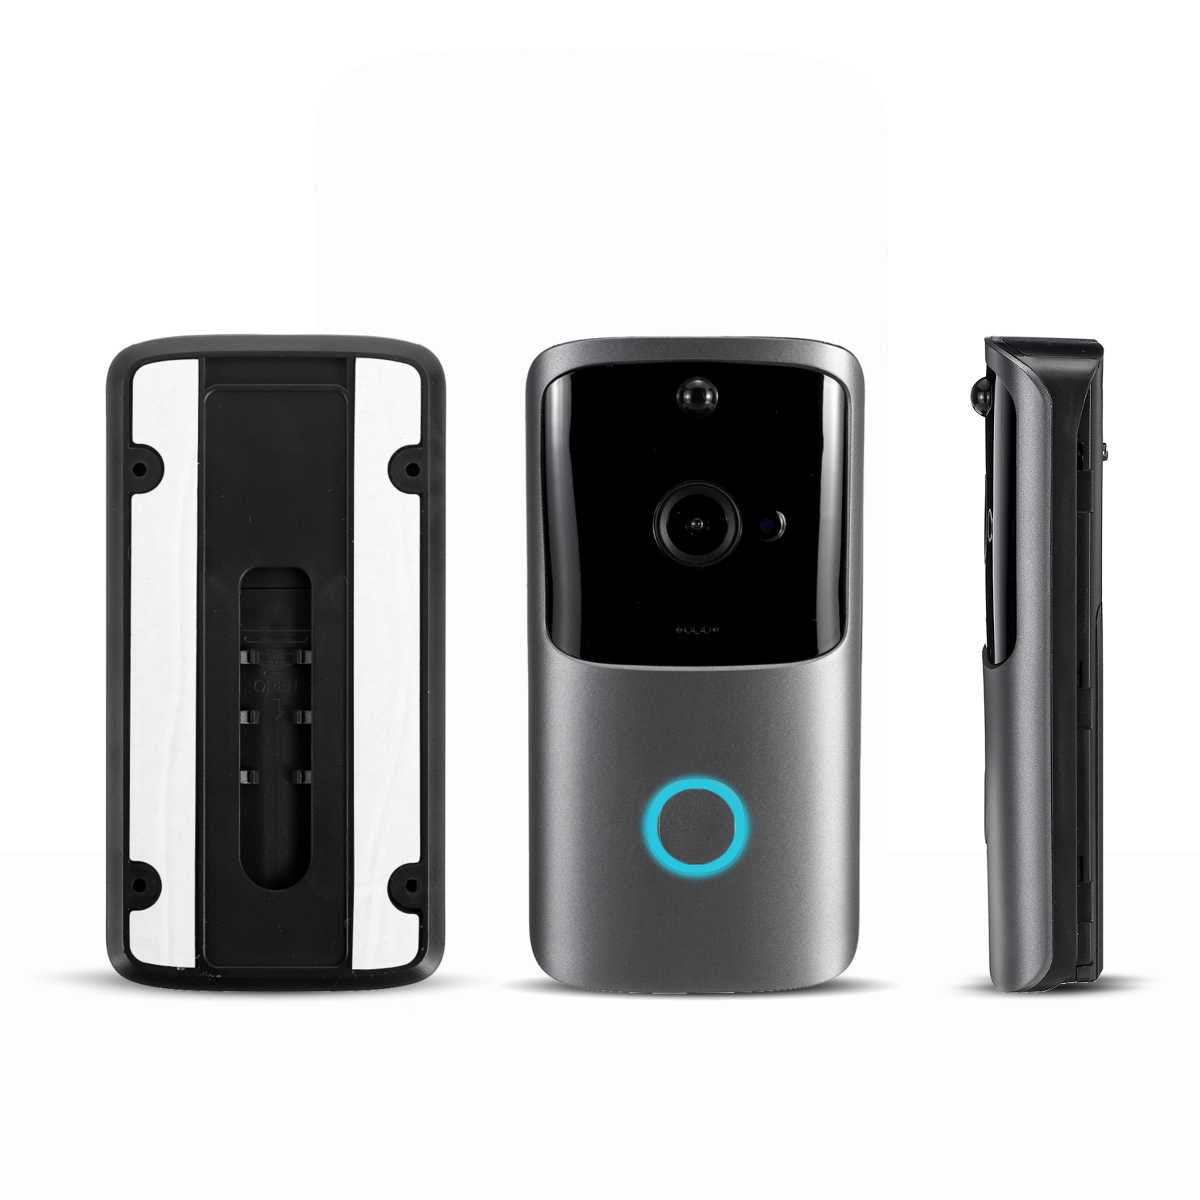 Smart WiFi Doorbell Camera Two-way Intercom with Android & iOS [incl. Night Vision] (Silver)